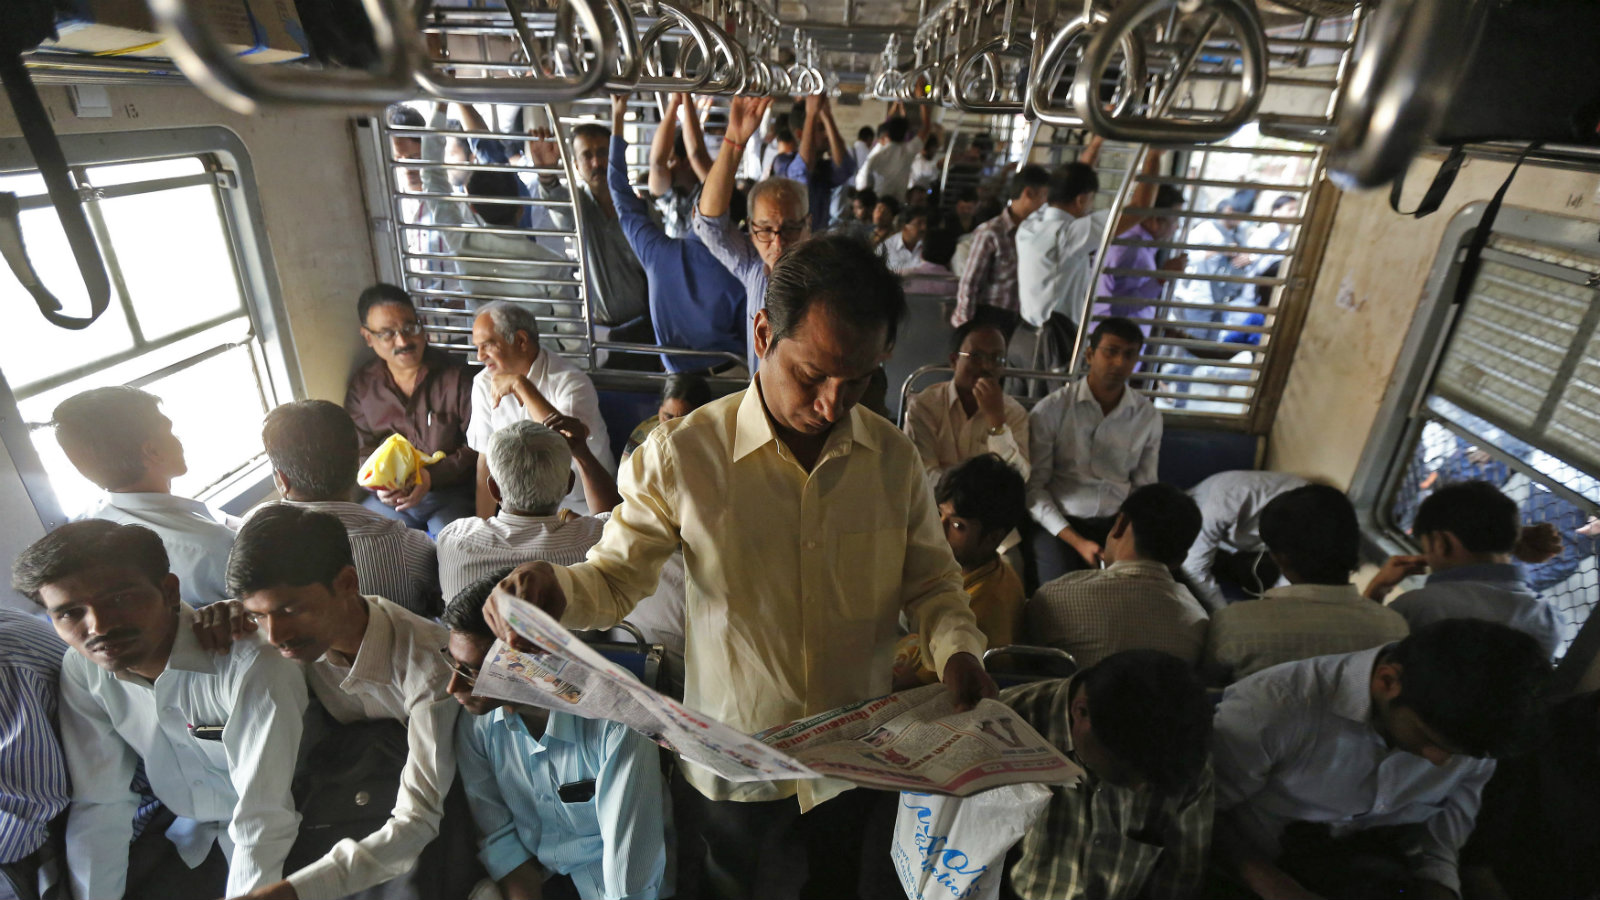 A man reads the newspaper as he commutes to work by a local train in Mumbai February 25, 2015. India's railway budget, to be presented later on Thursday, will signal the direction of long-term reforms needed to revamp the world's fourth-largest rail network, Railway Minister Suresh Prabhu said. Picture taken February 25, 2015.